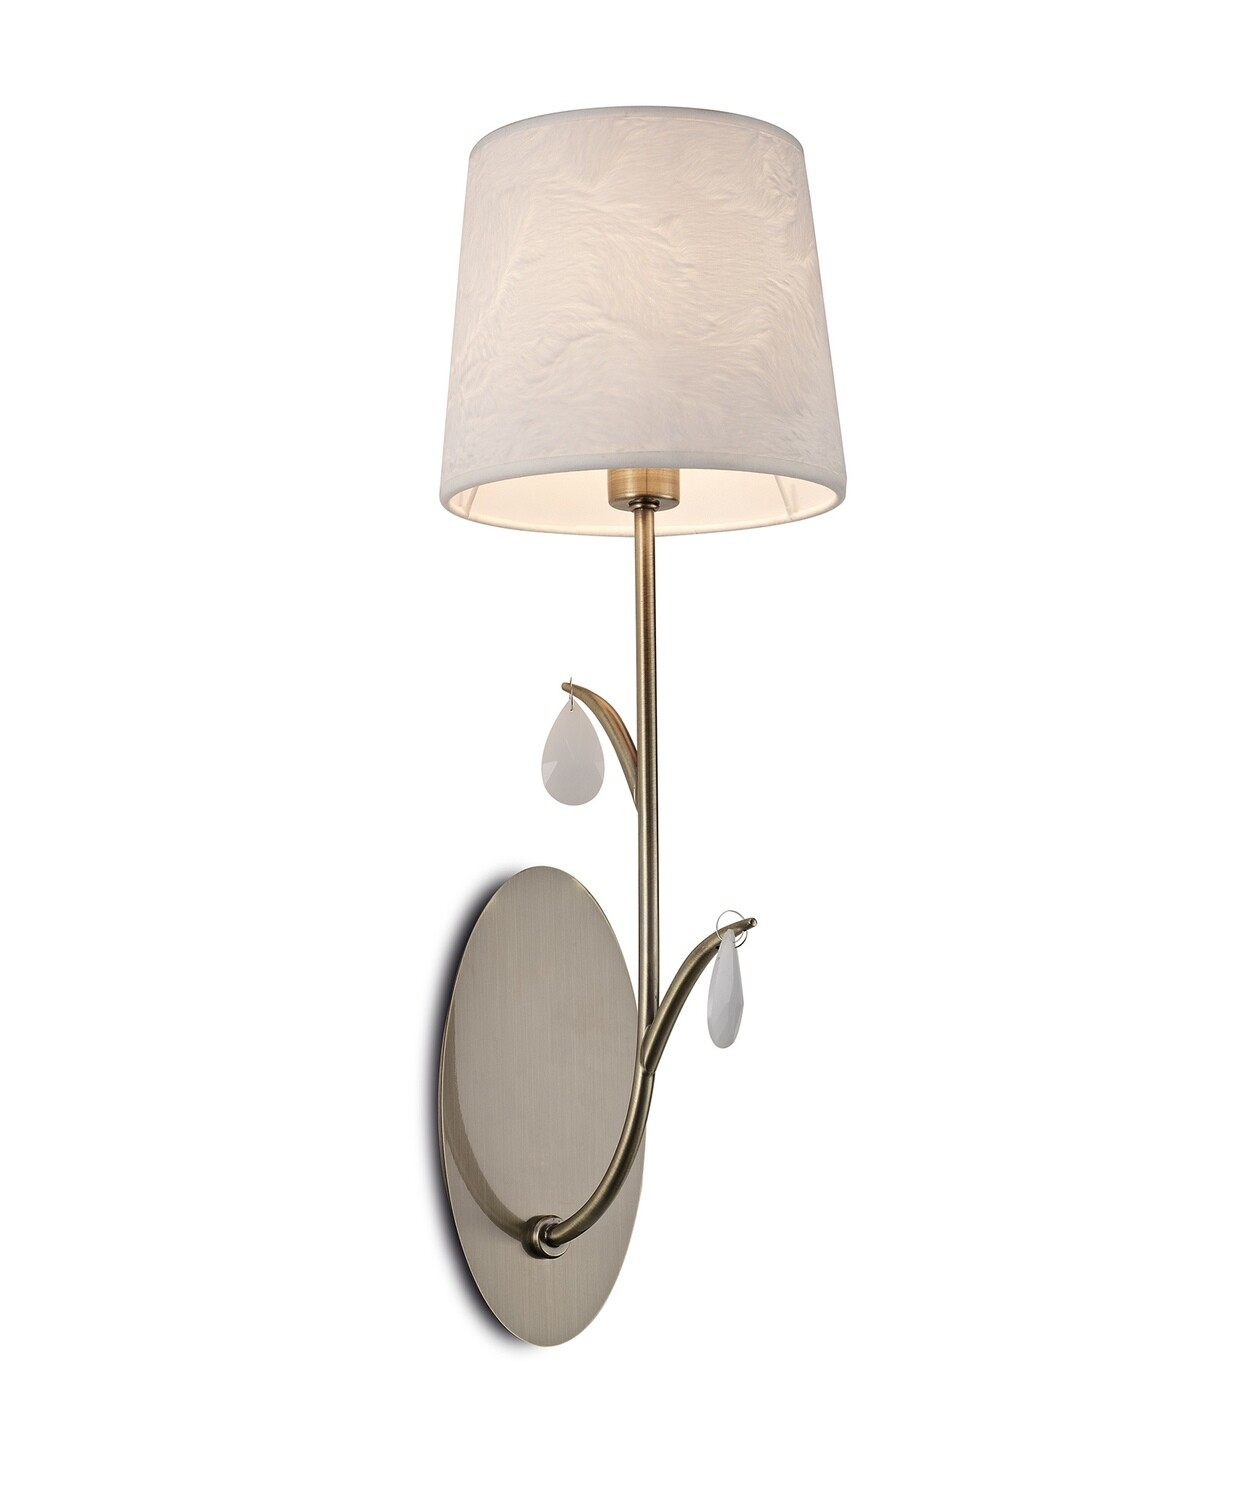 Andrea Wall Light, 1 x E14, Antique Brass, White Shades, White Crystal Droplets